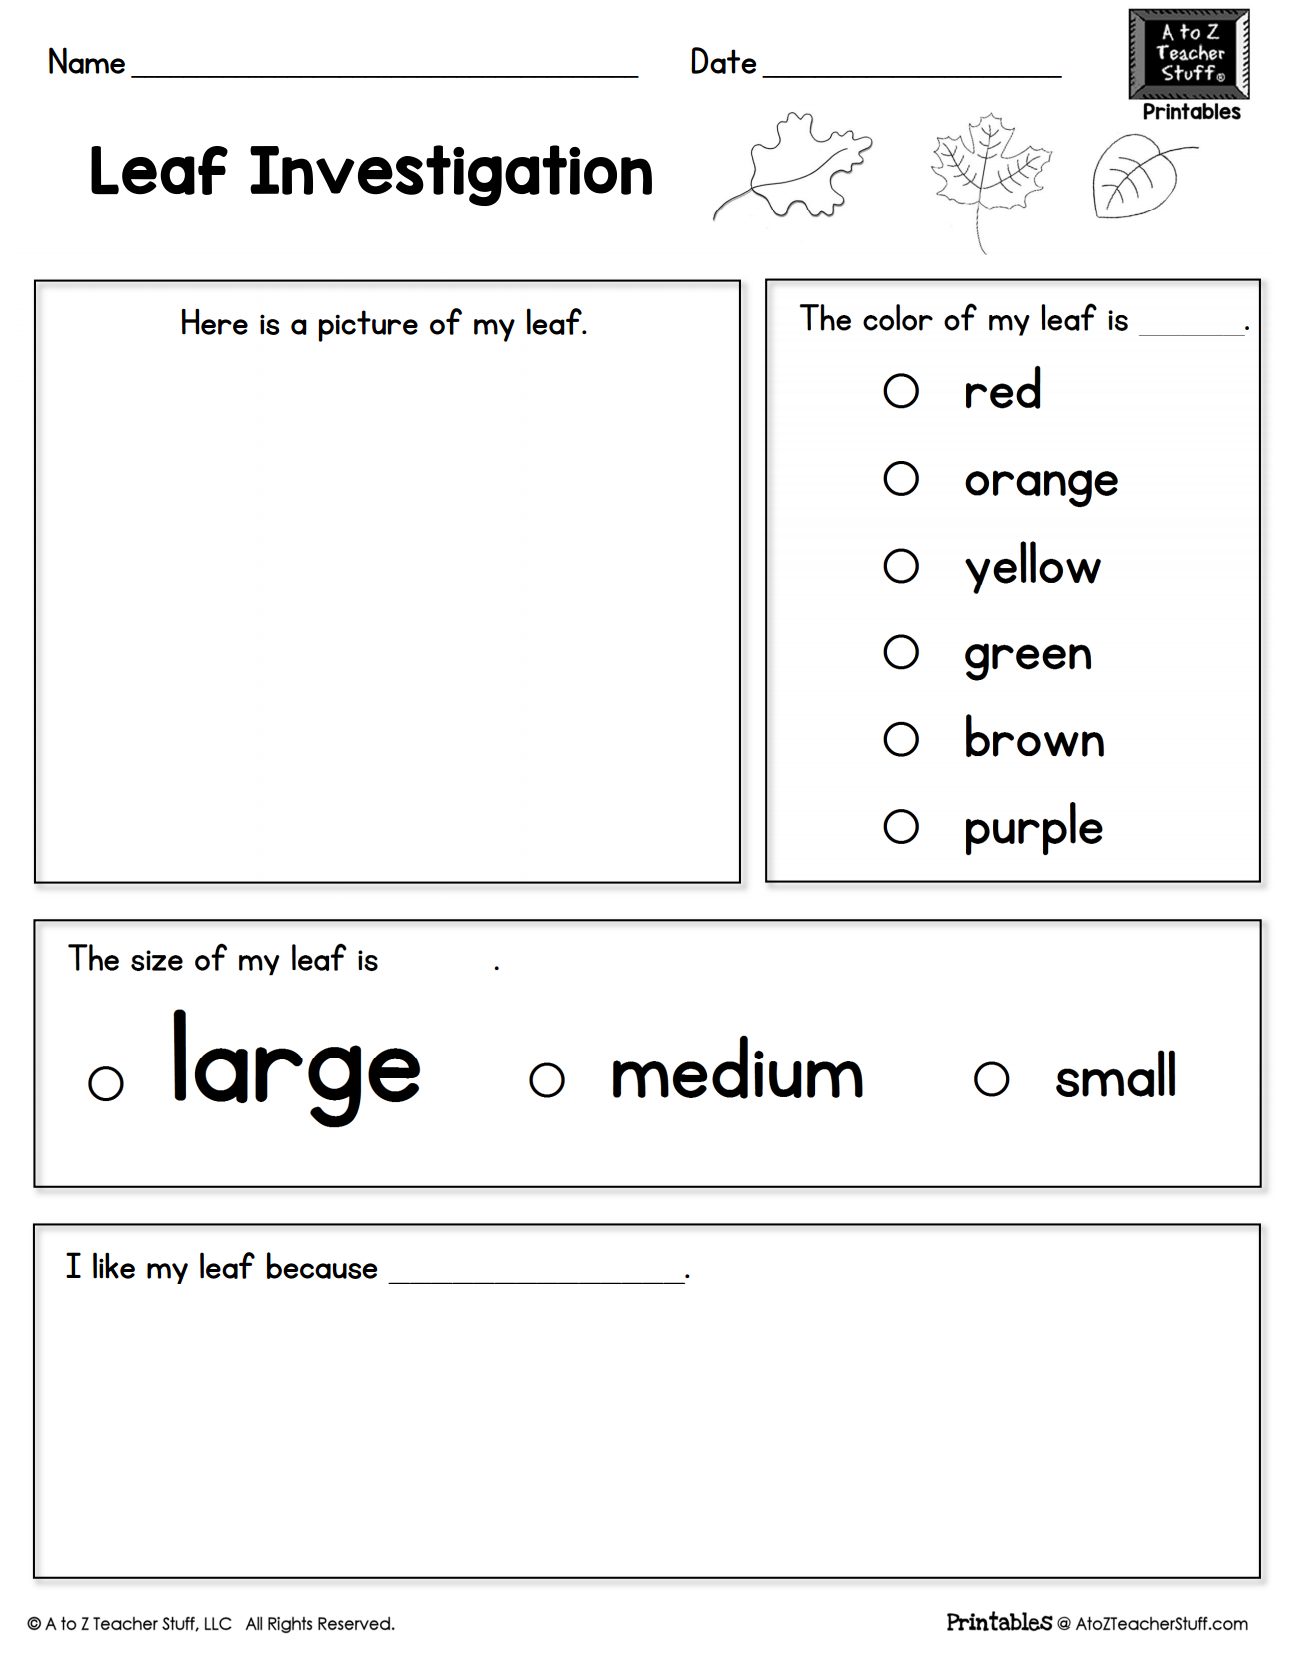 Leaf Investigation Printable Worksheet | A to Z Teacher Stuff ...